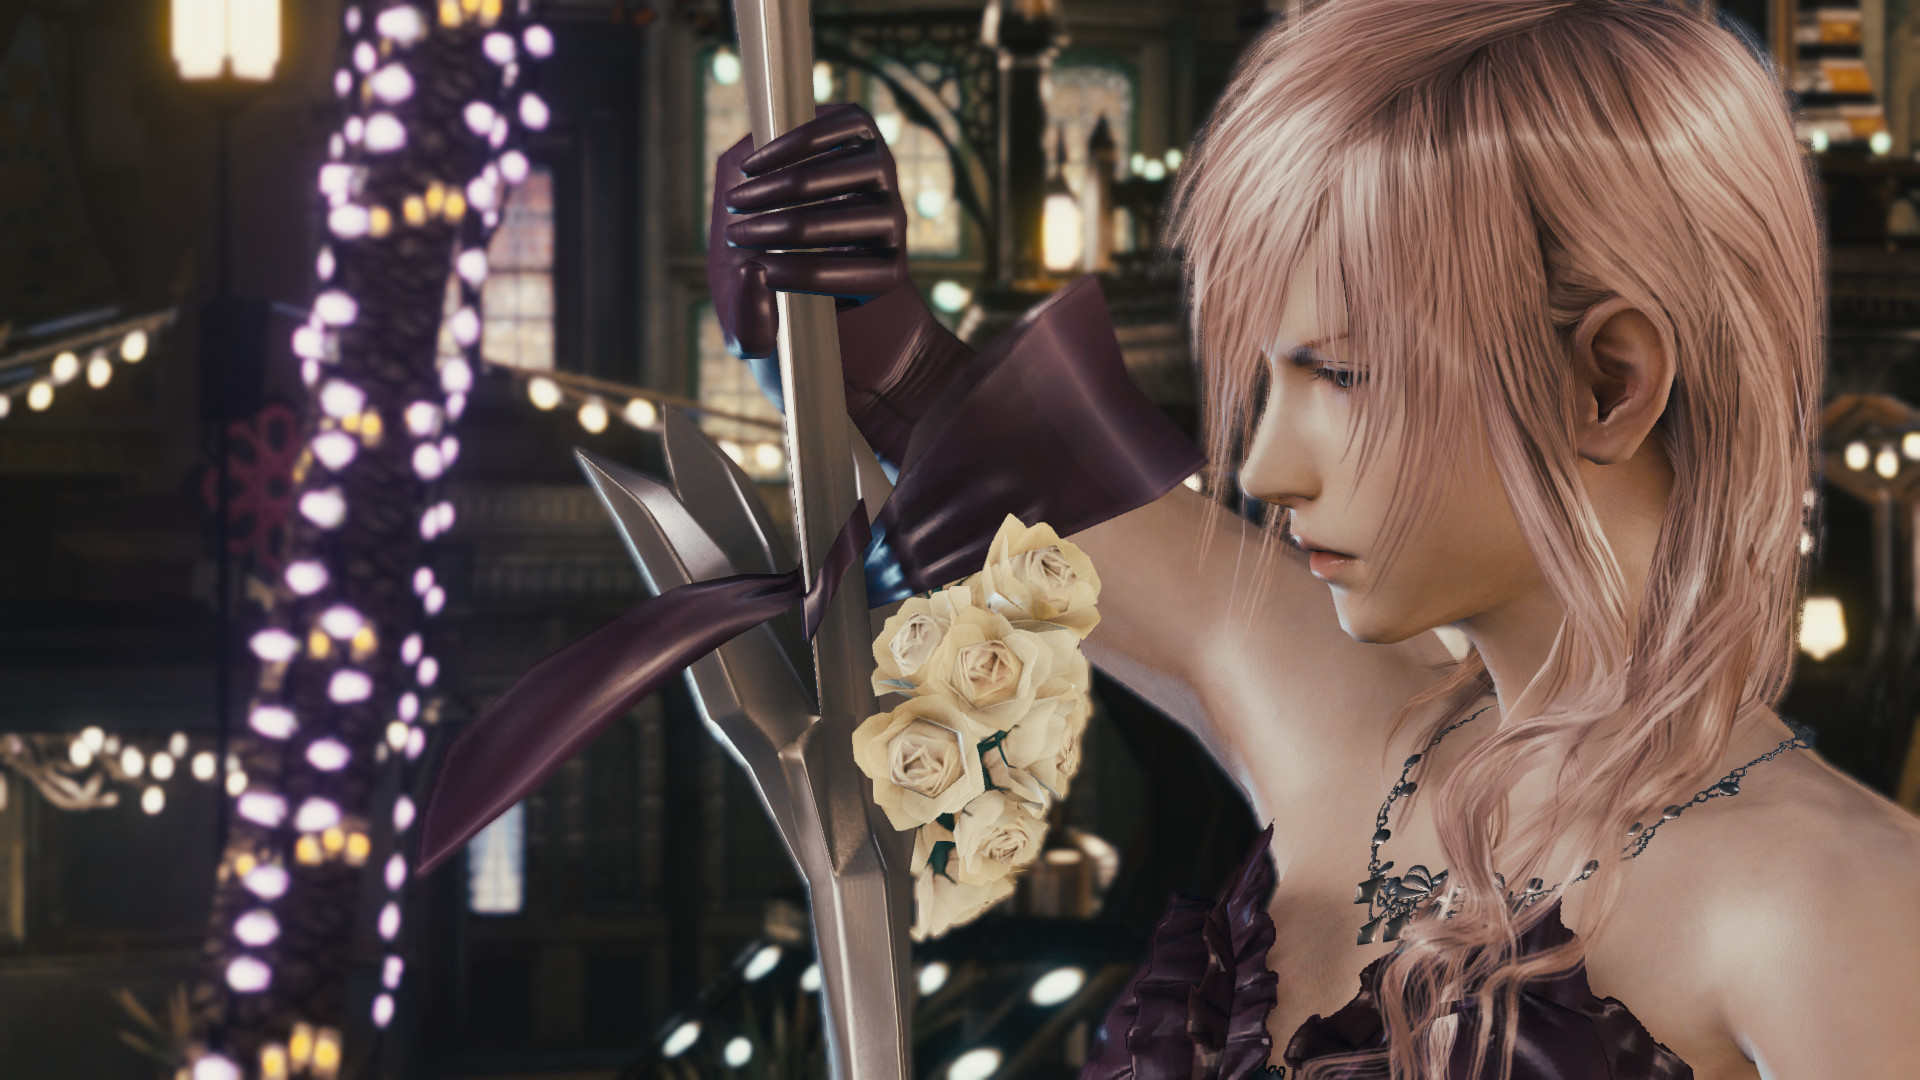 lightning returns™: final fantasy® xiii - steamstat.ru